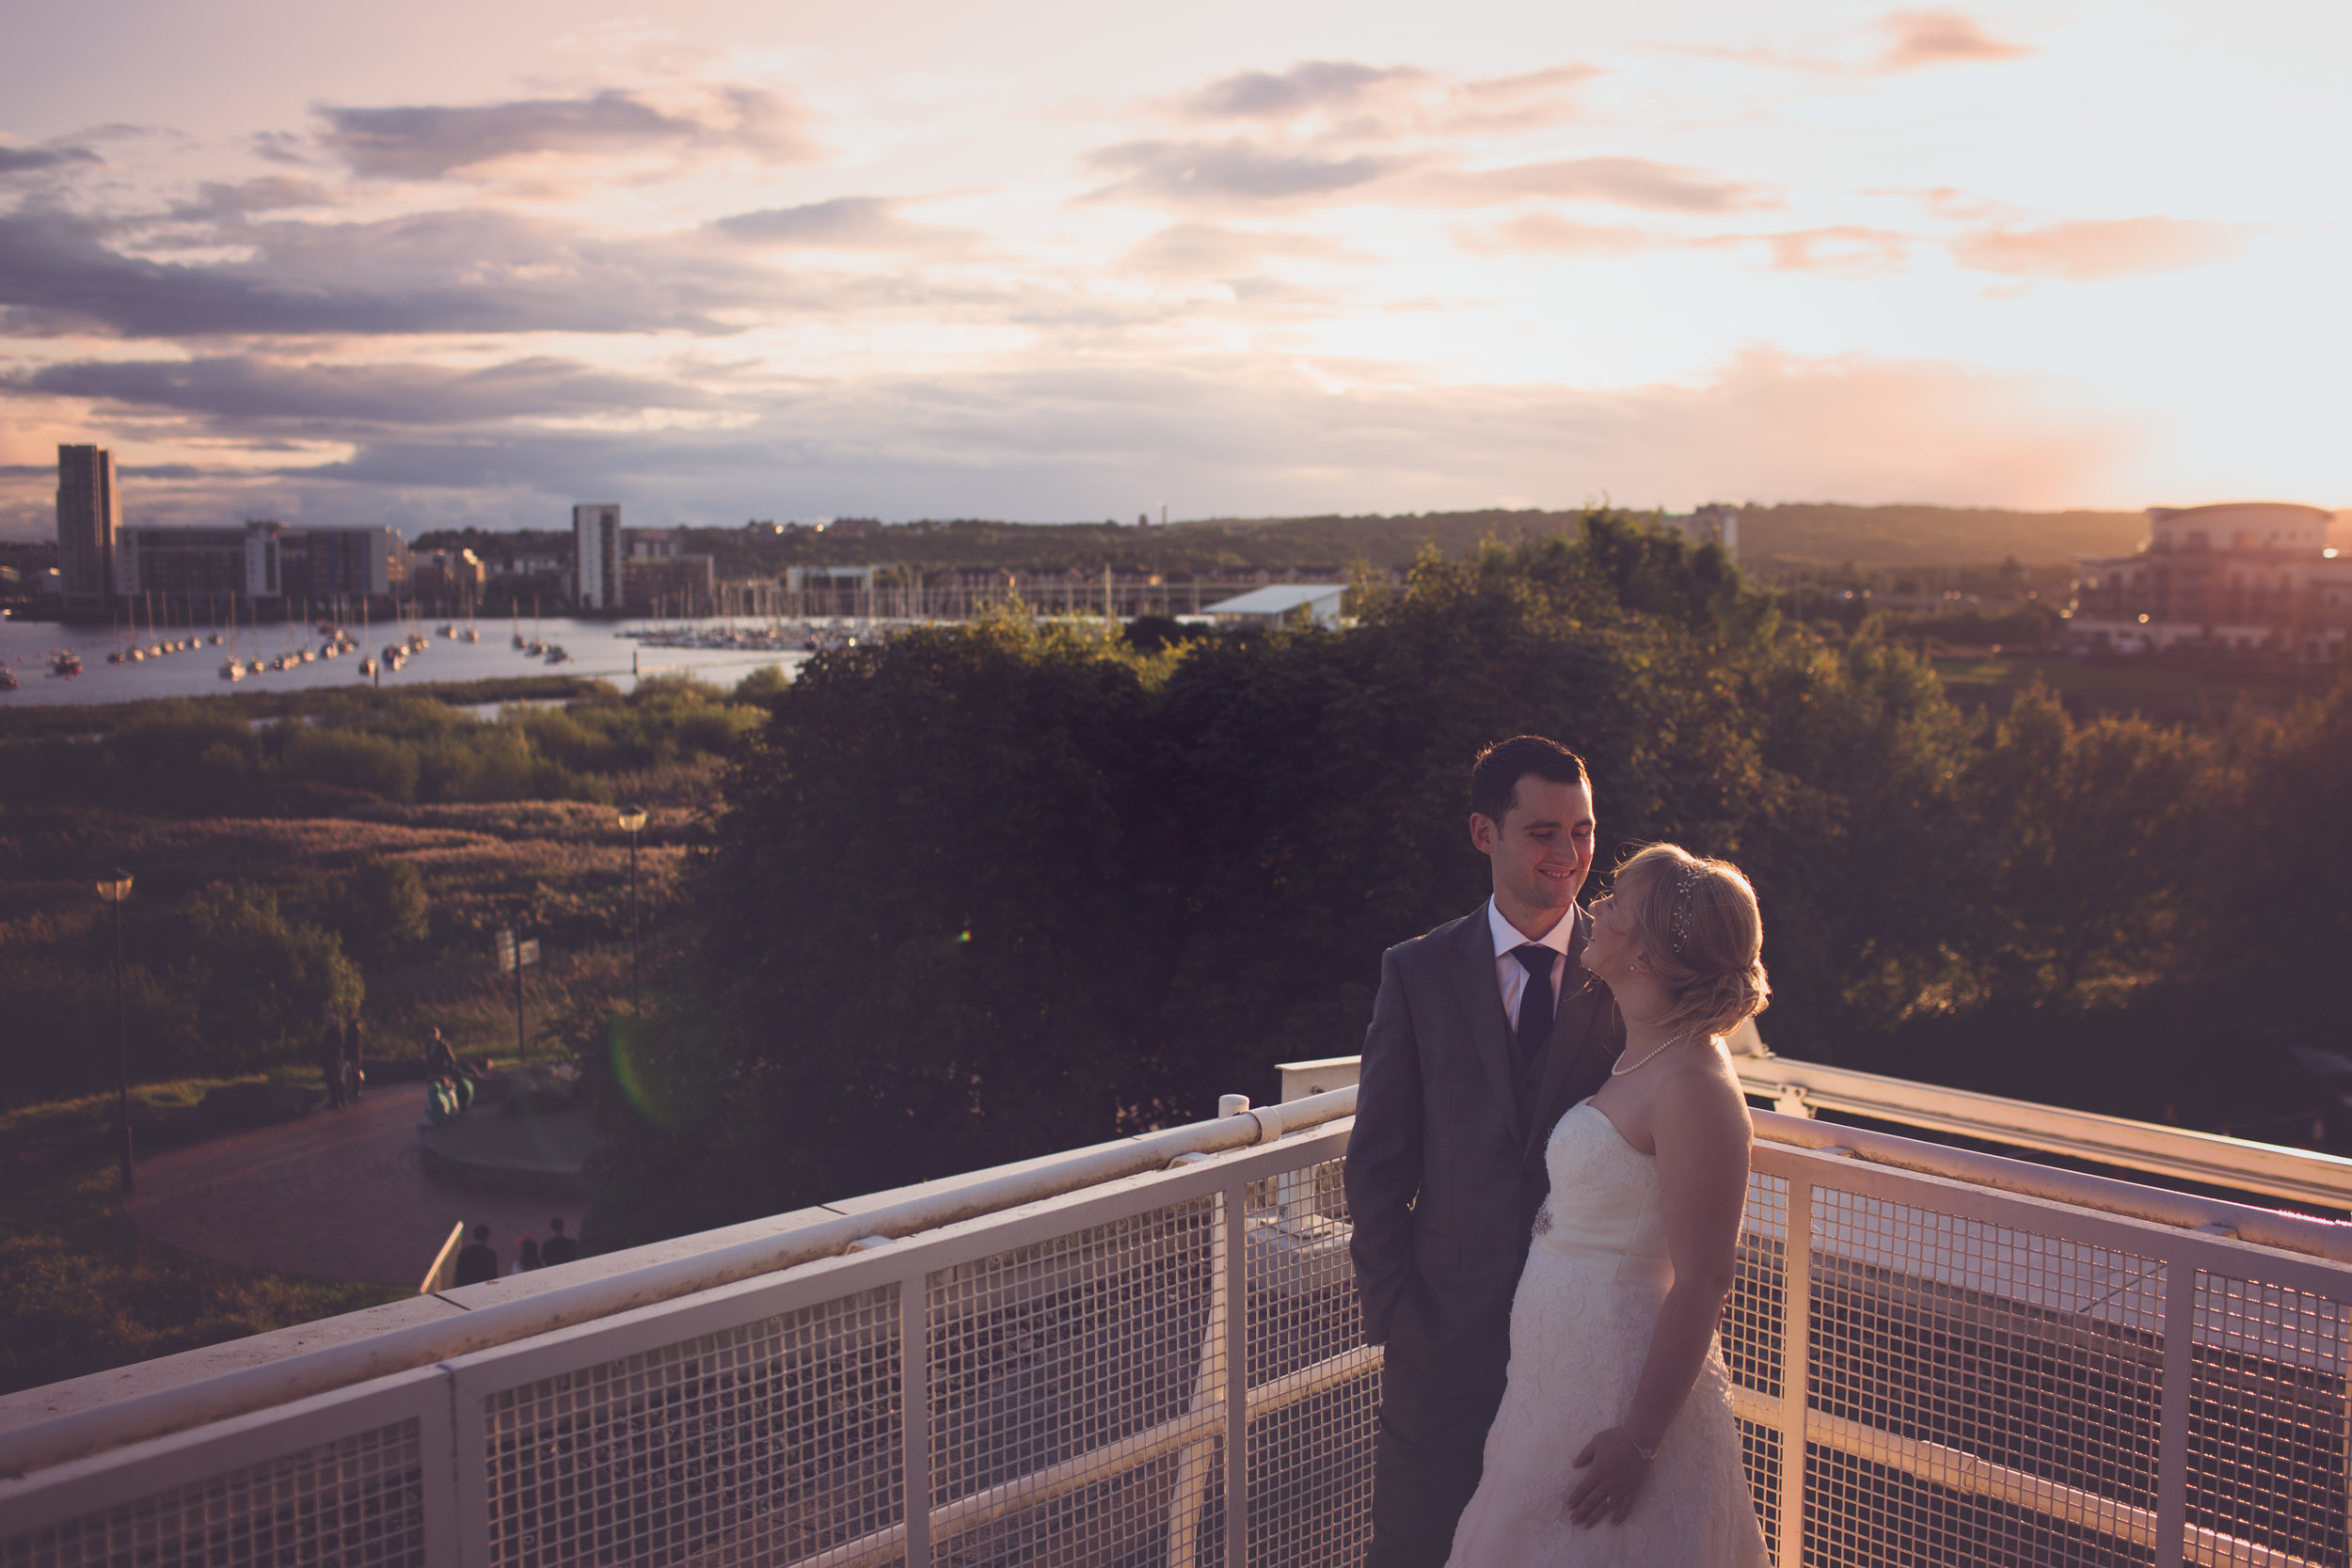 Mark_Barnes_South_Wales_Wedding_photographer_Cardiff_St_Davids_Hotel_wedding_photography_Mark_and_Abi-For_Print-309.jpg